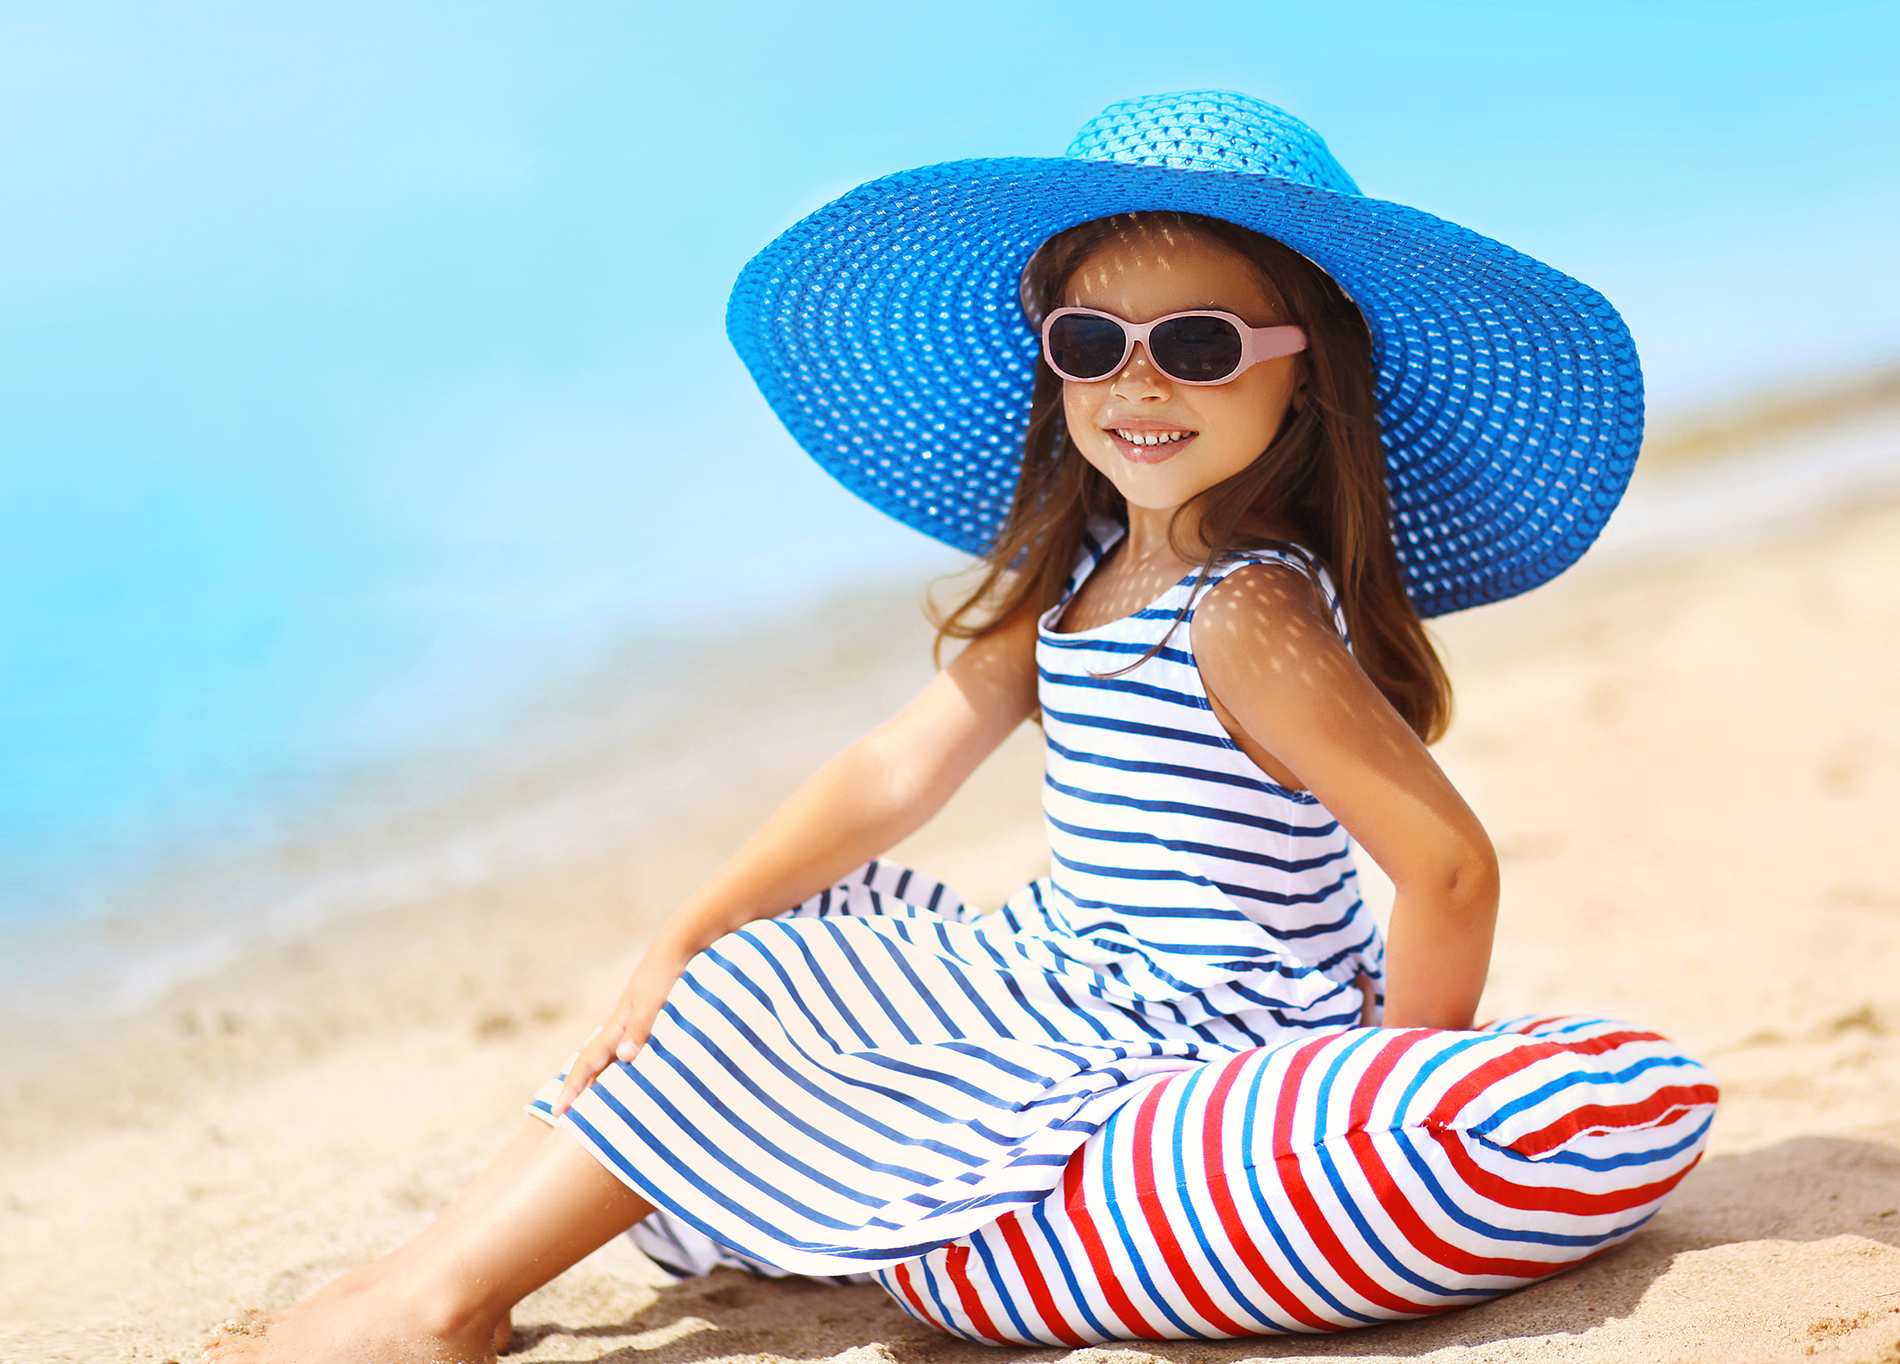 Sitting on the beach for children 53795